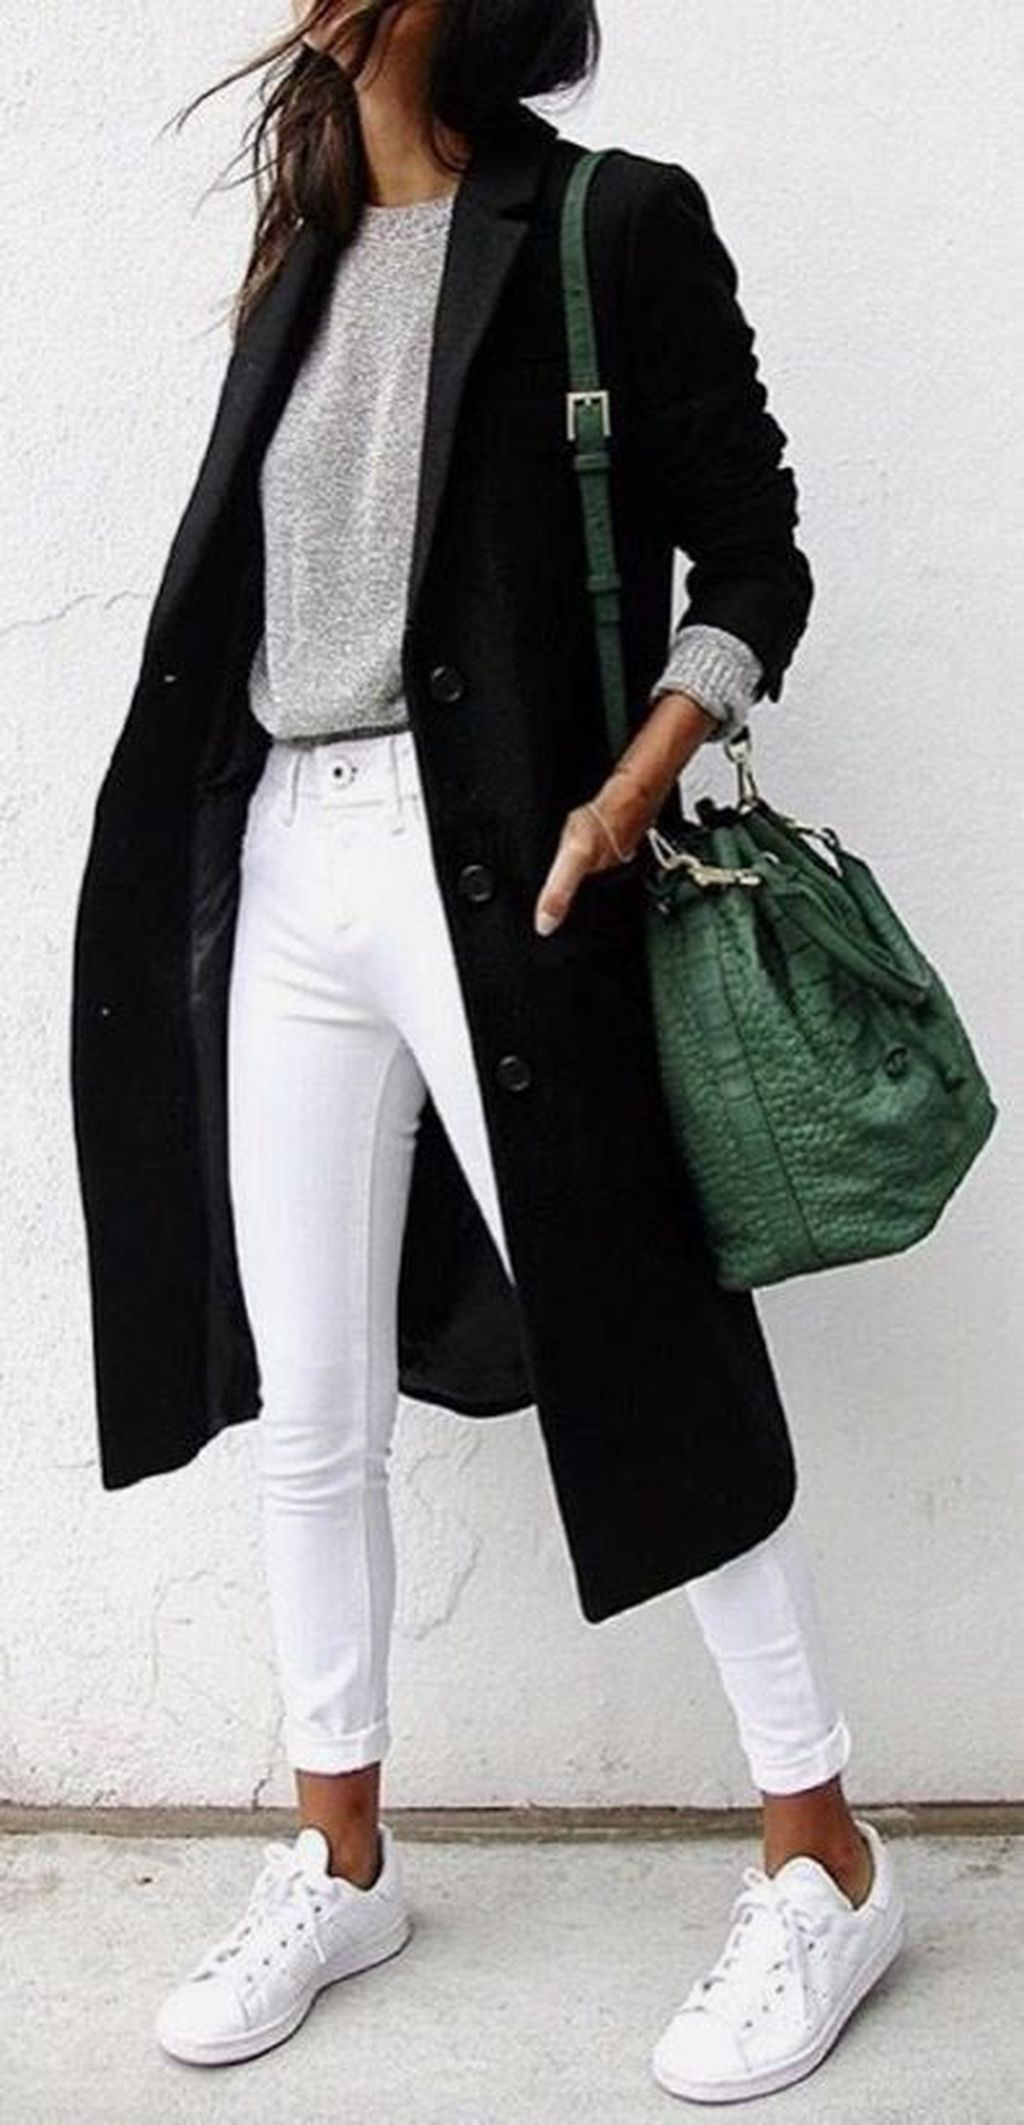 0f090d640c3 25 outfit ideas to style white pants - How to style white jeans outfit ideas